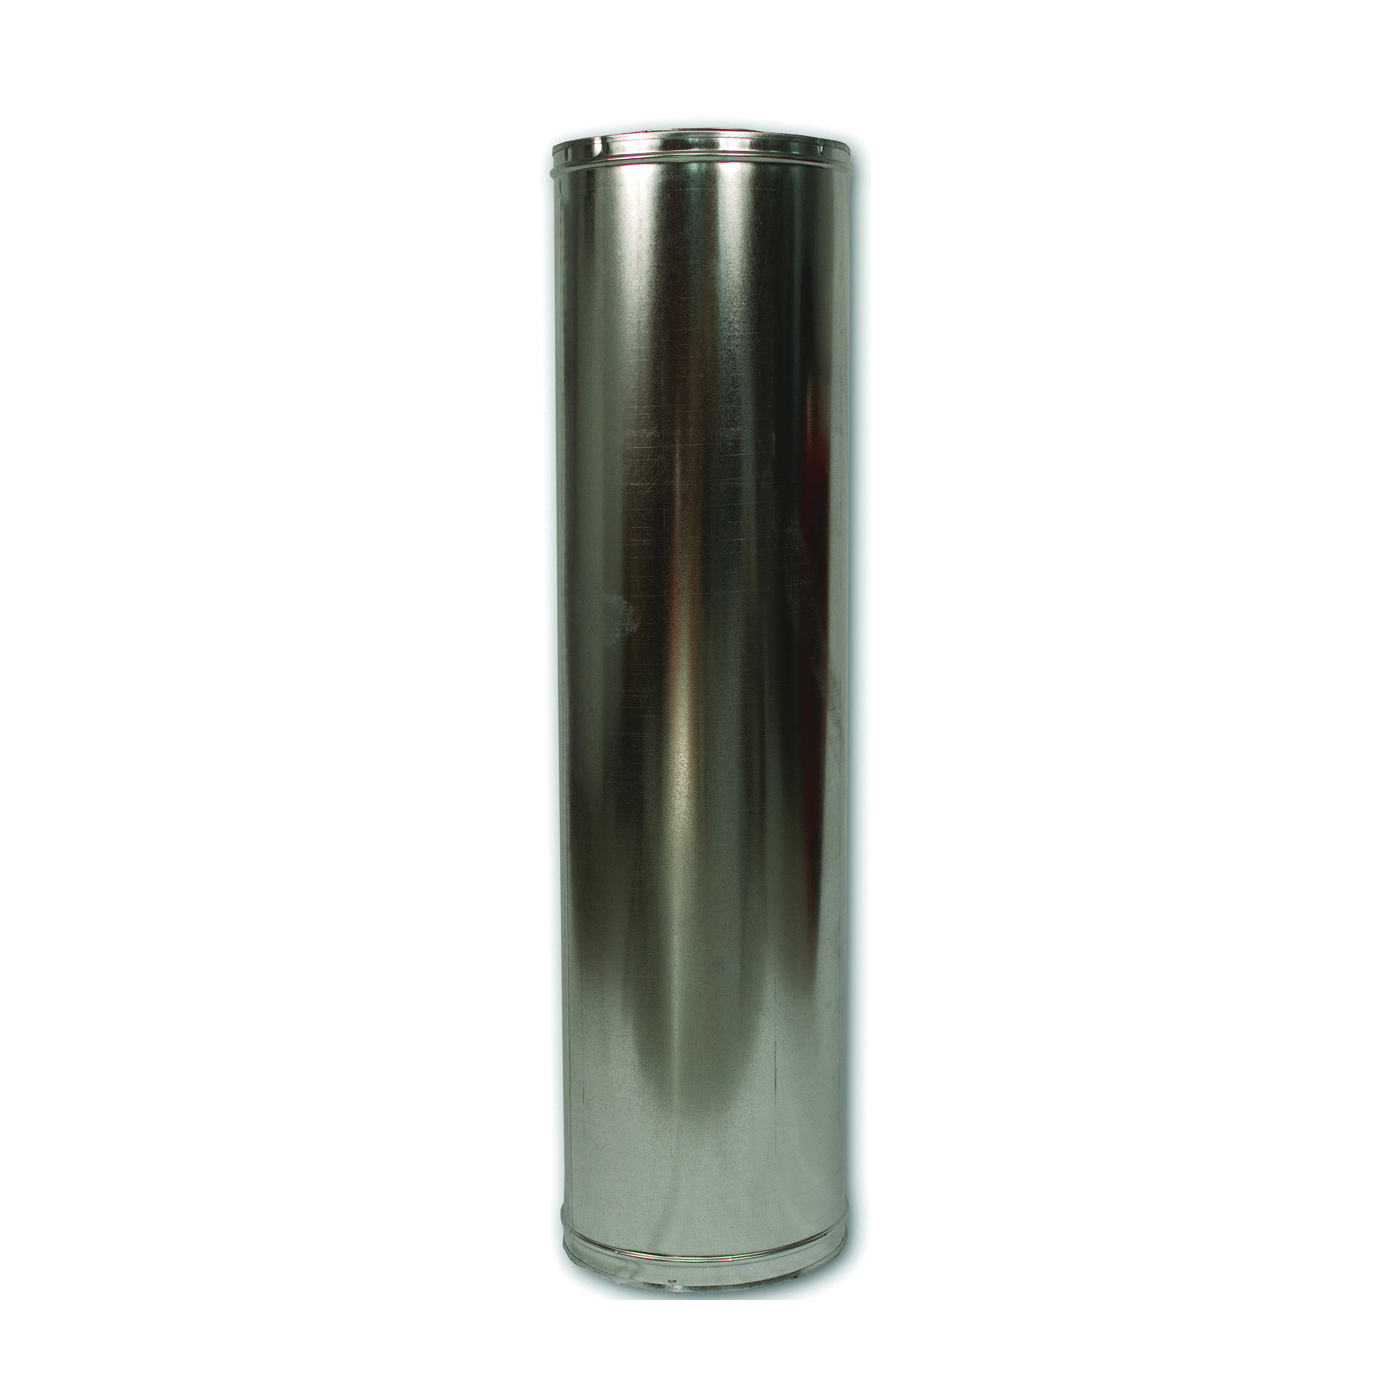 Picture of Comfort Flame 48-8DM Chimney Pipe, 12-3/8 in OD, 48 in L, Galvanized Steel